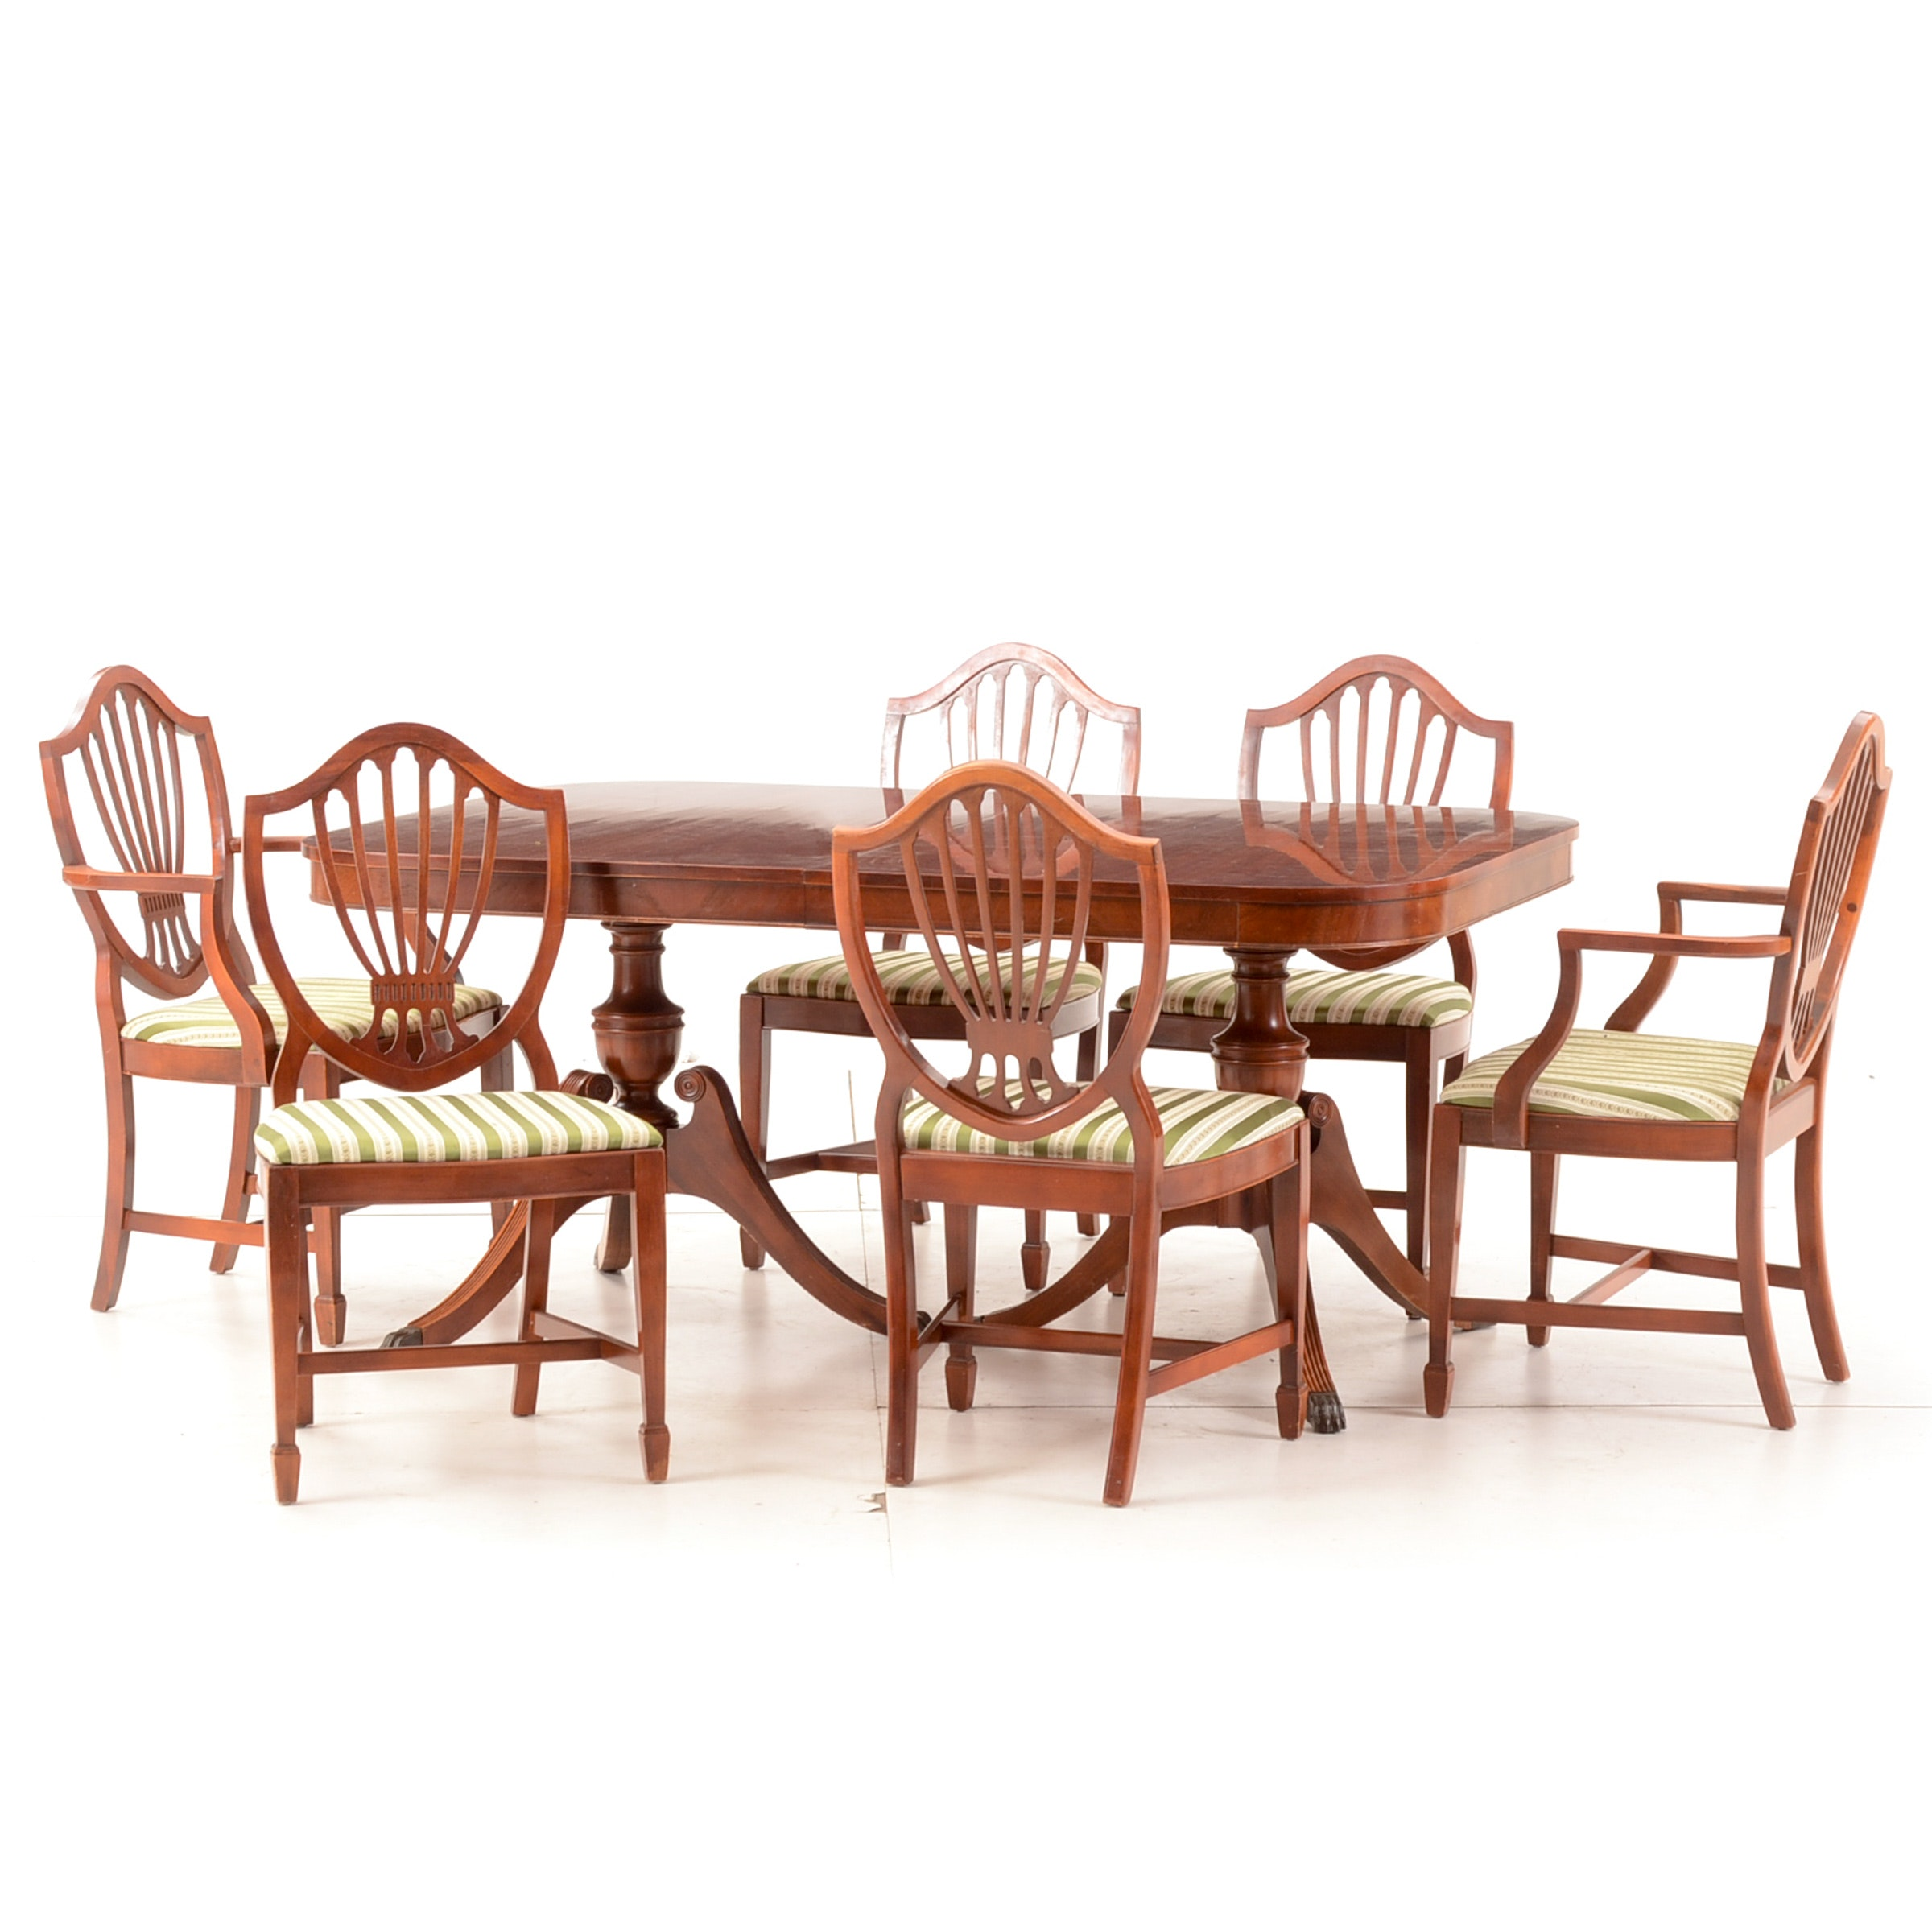 Hepplewhite Style Mahogany Dining Table and Six Chairs